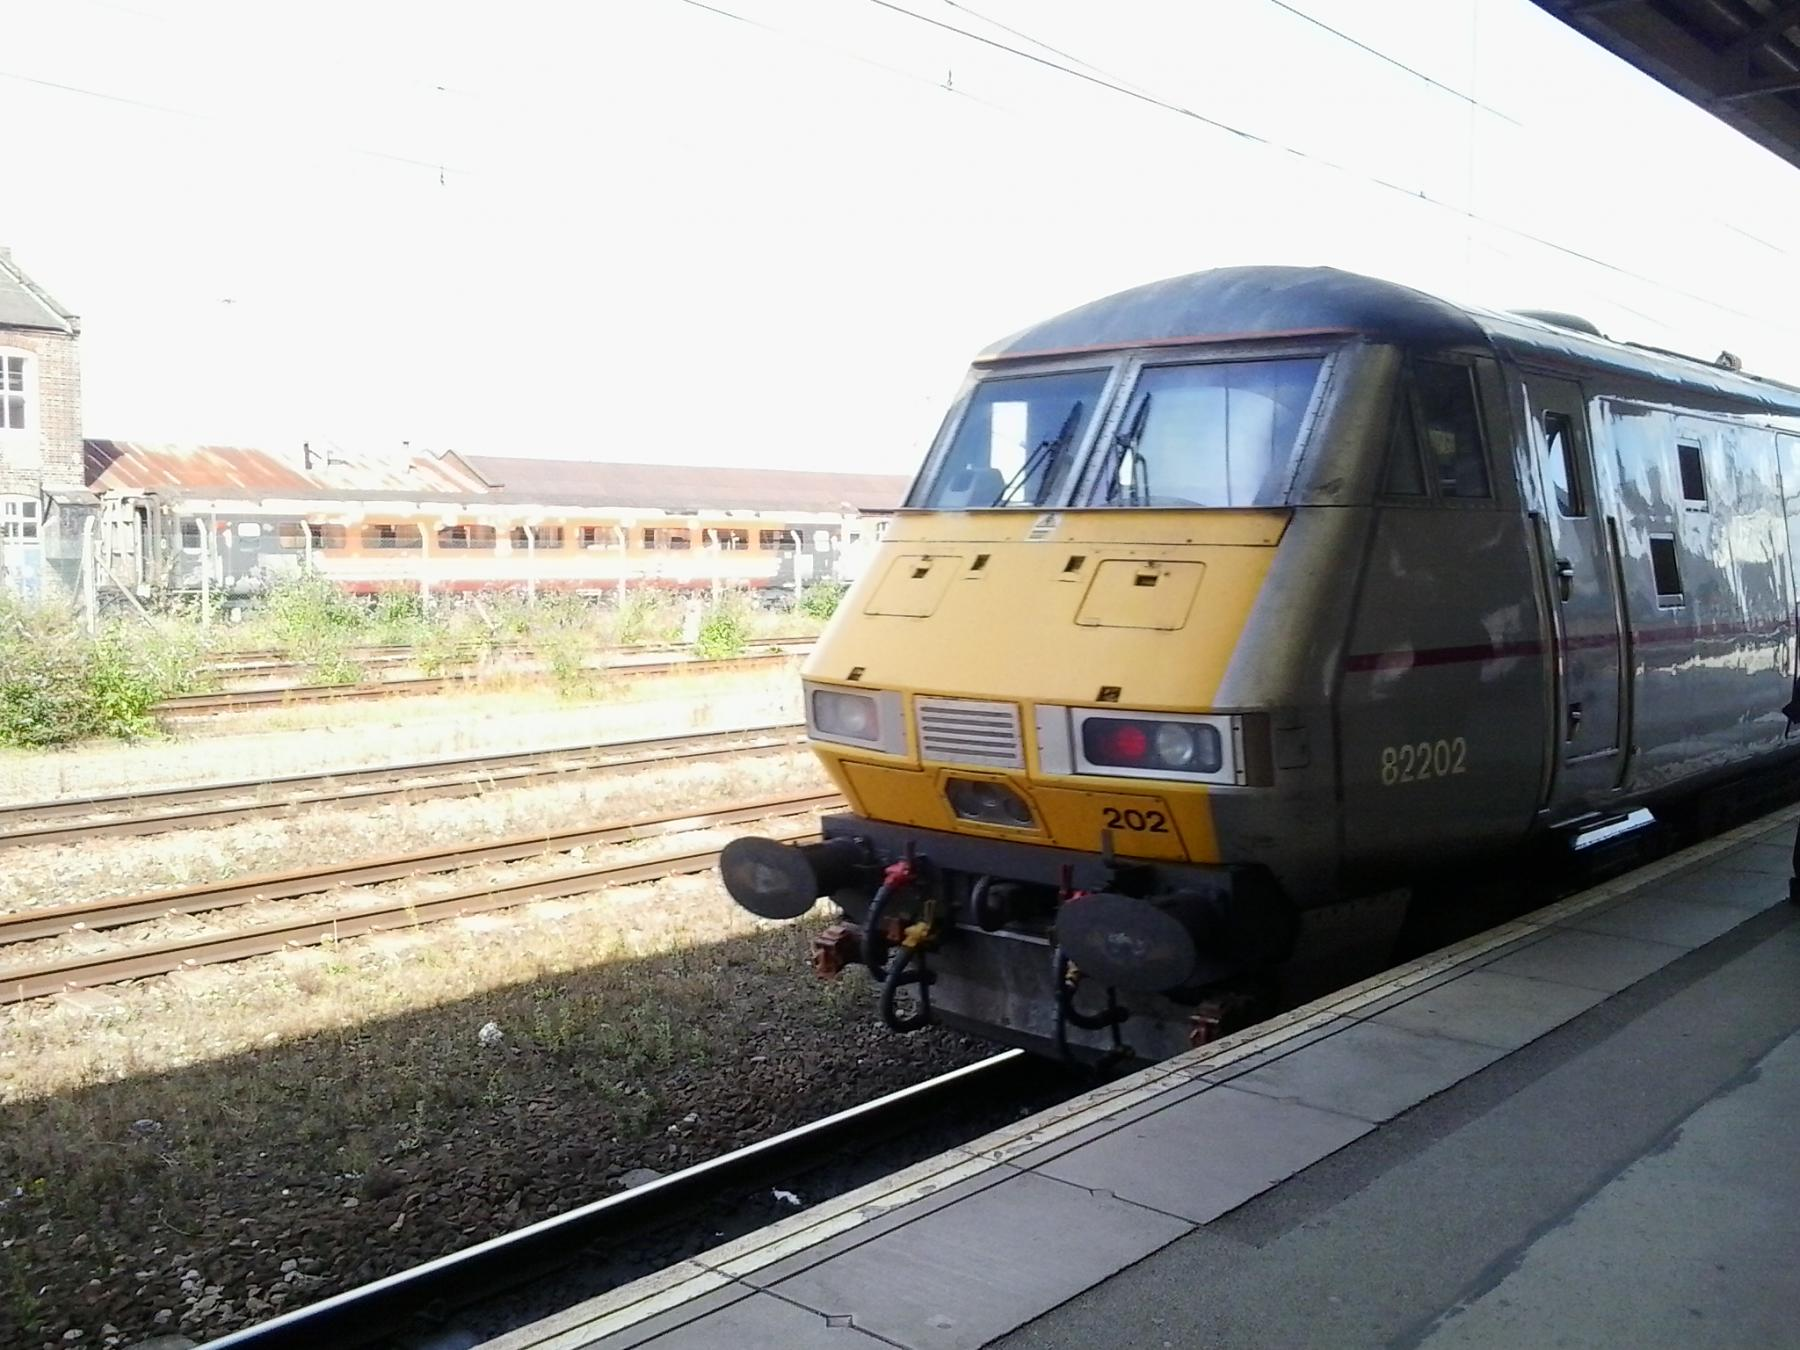 Intercity 225 in Donny.